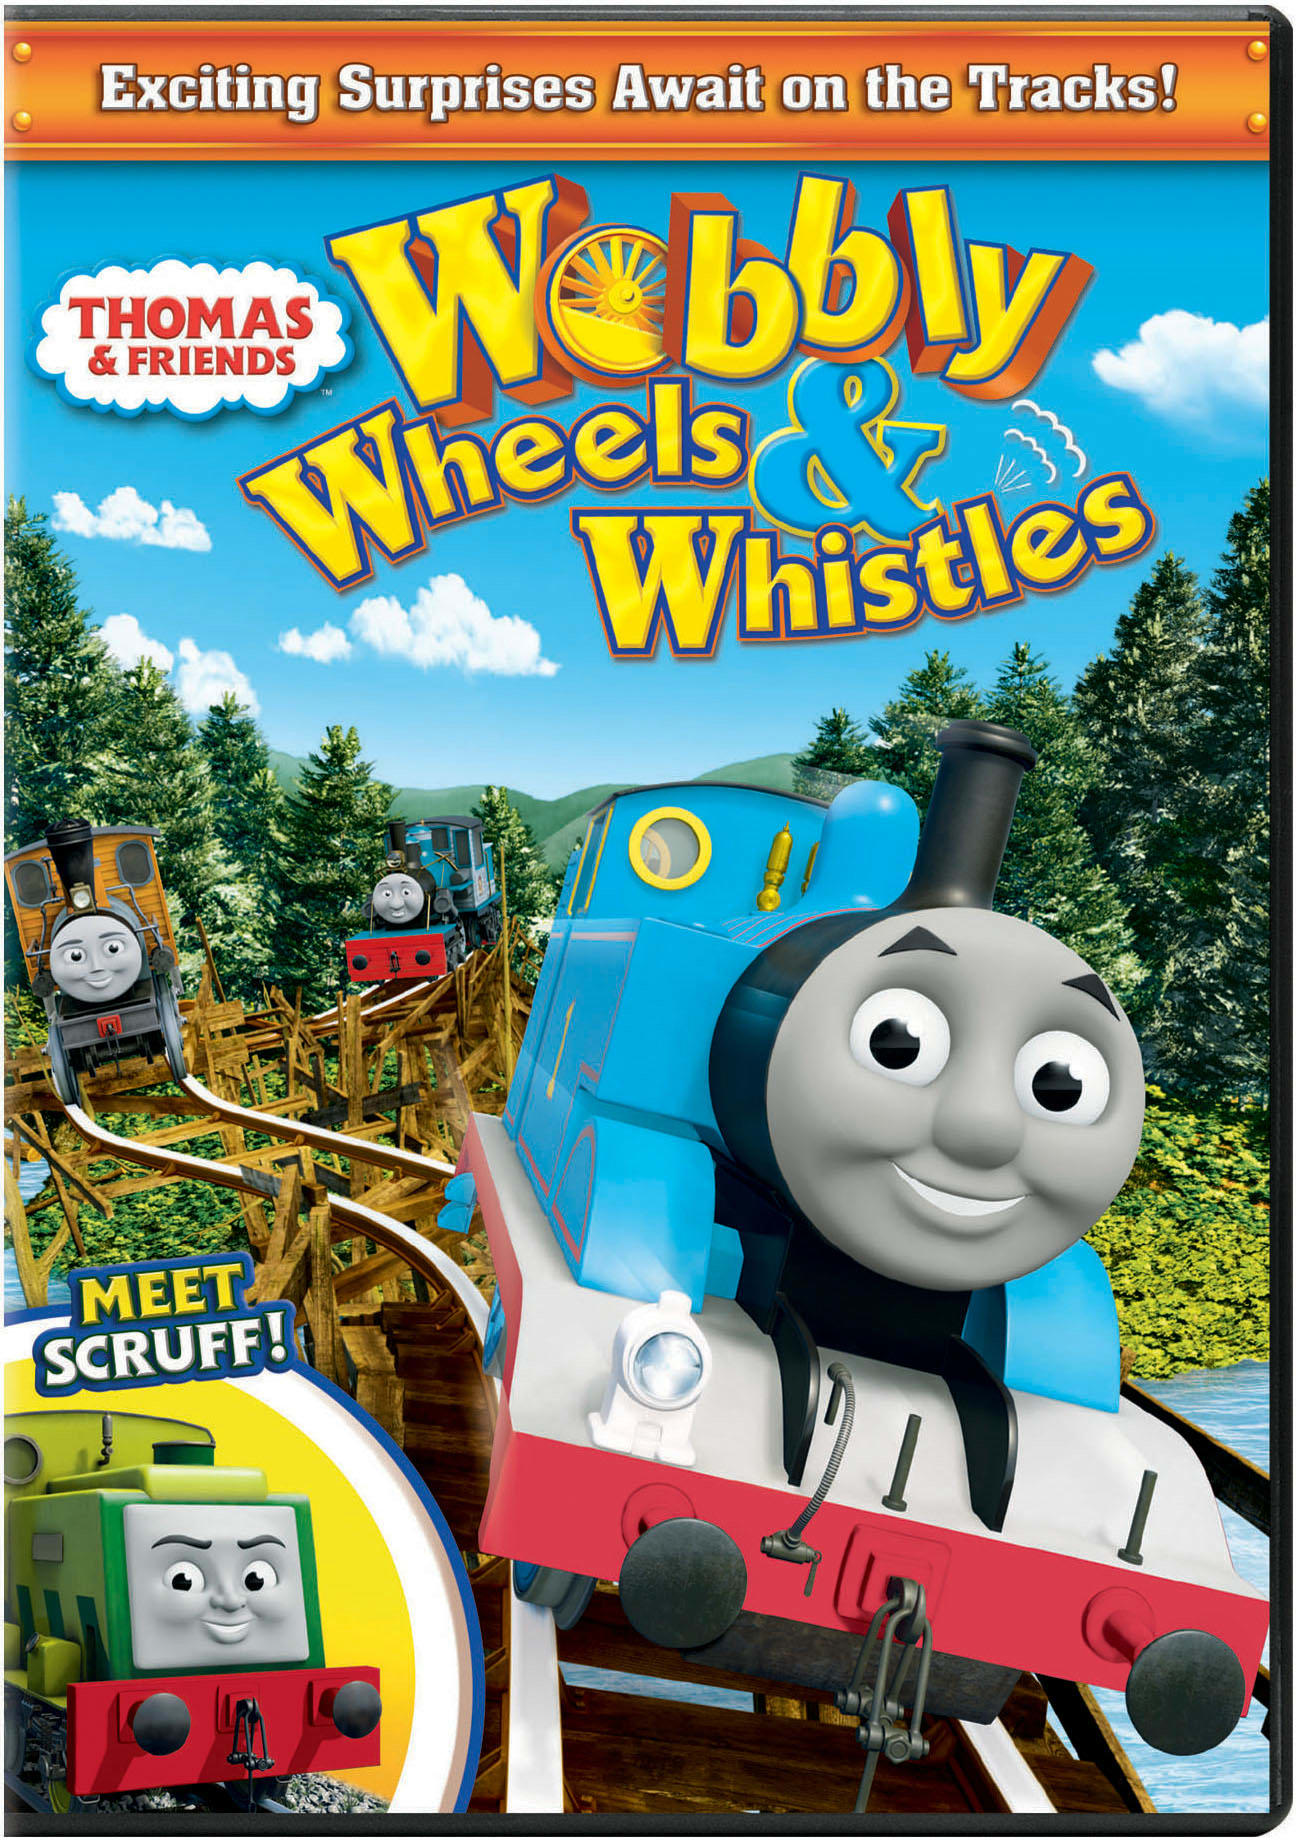 Thomas the Tank Engine and Friends: Wobbly Wheels and Whistles [DVD]